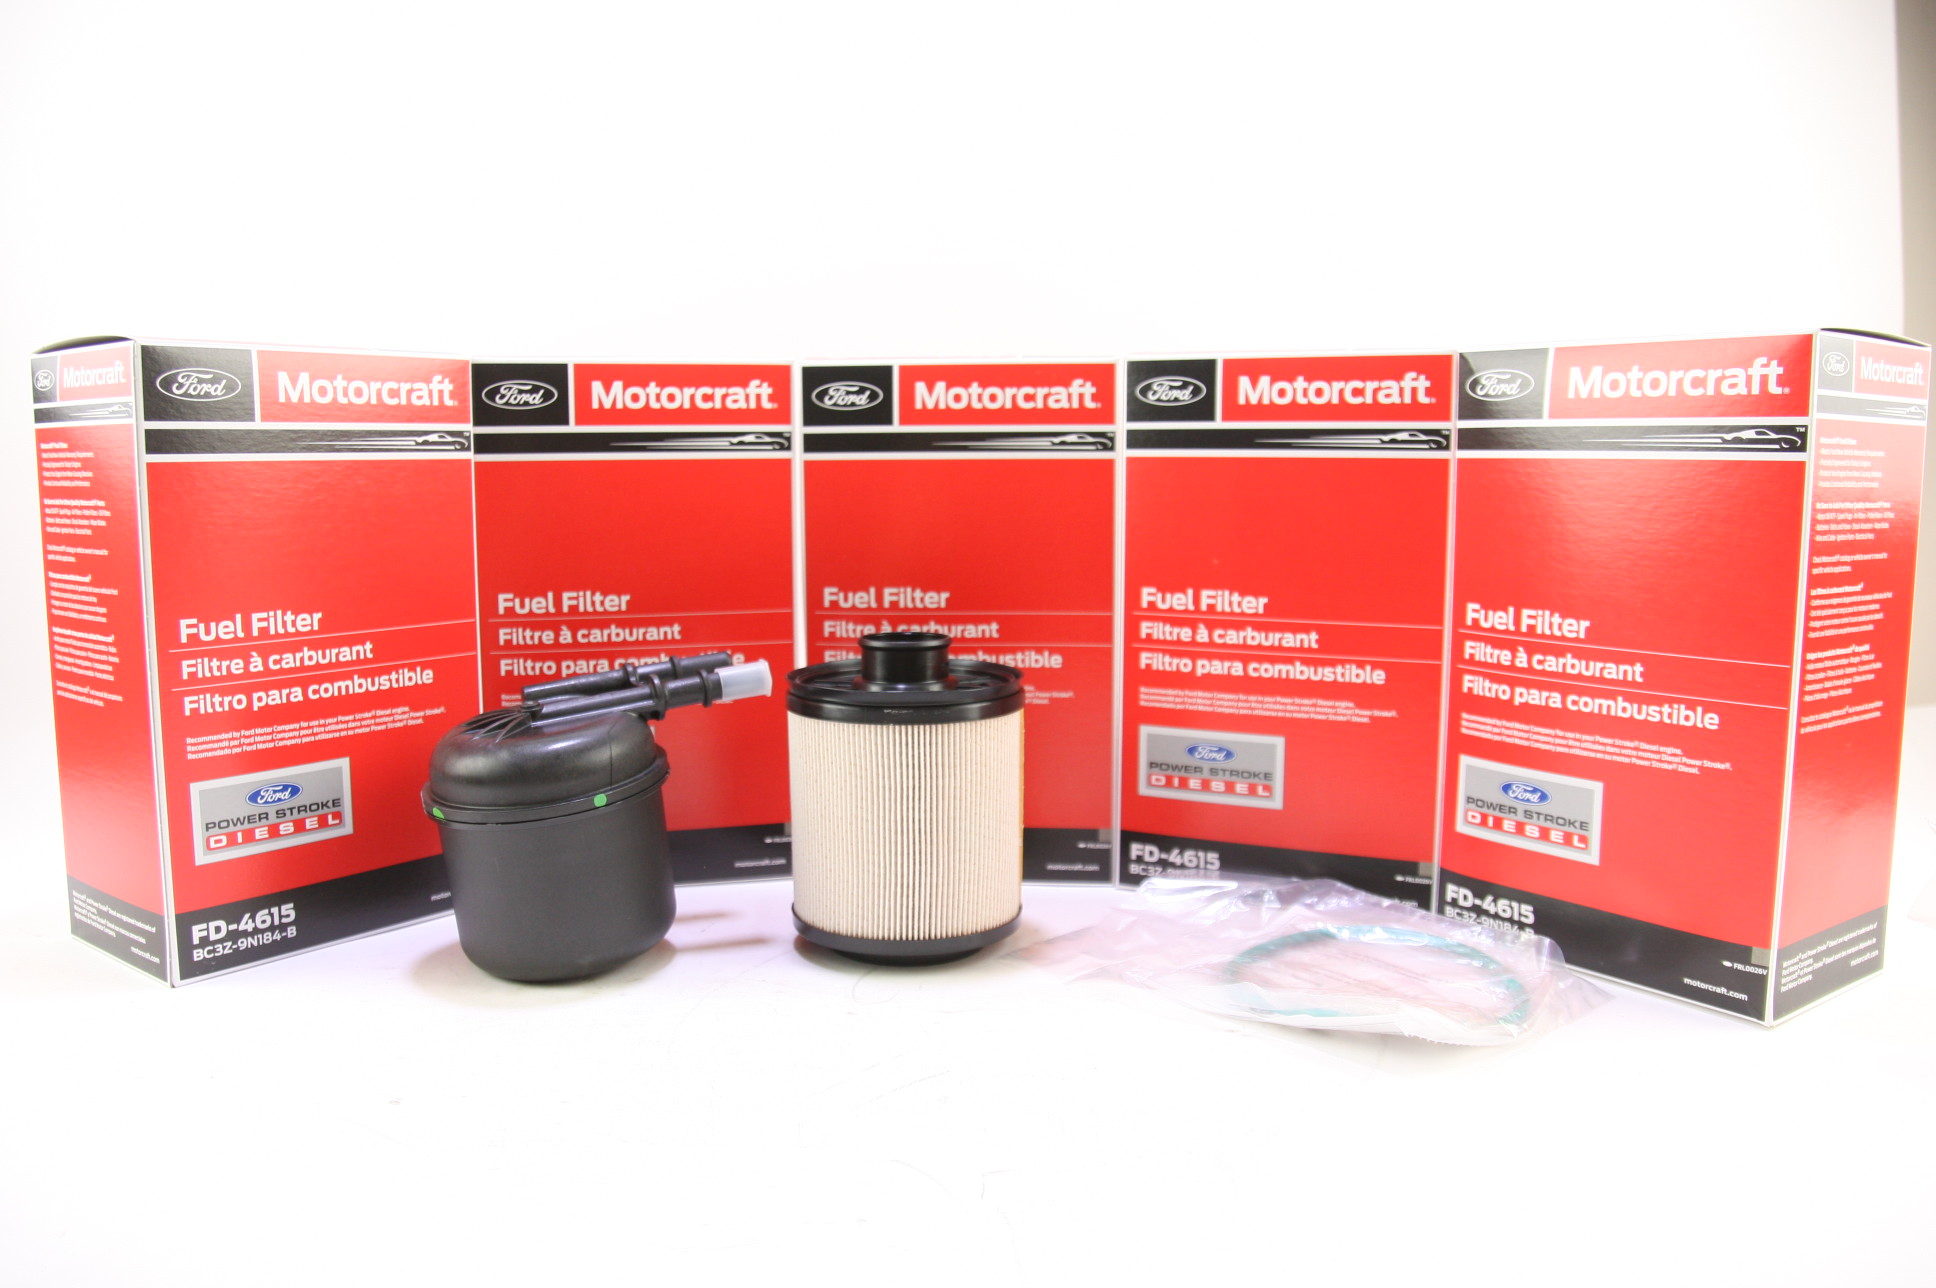 Set of 5 Ford Motorcraft FD4615 Fuel Filter 11-13 6.7L DIESEL BC3Z9N184B NIP - image 1